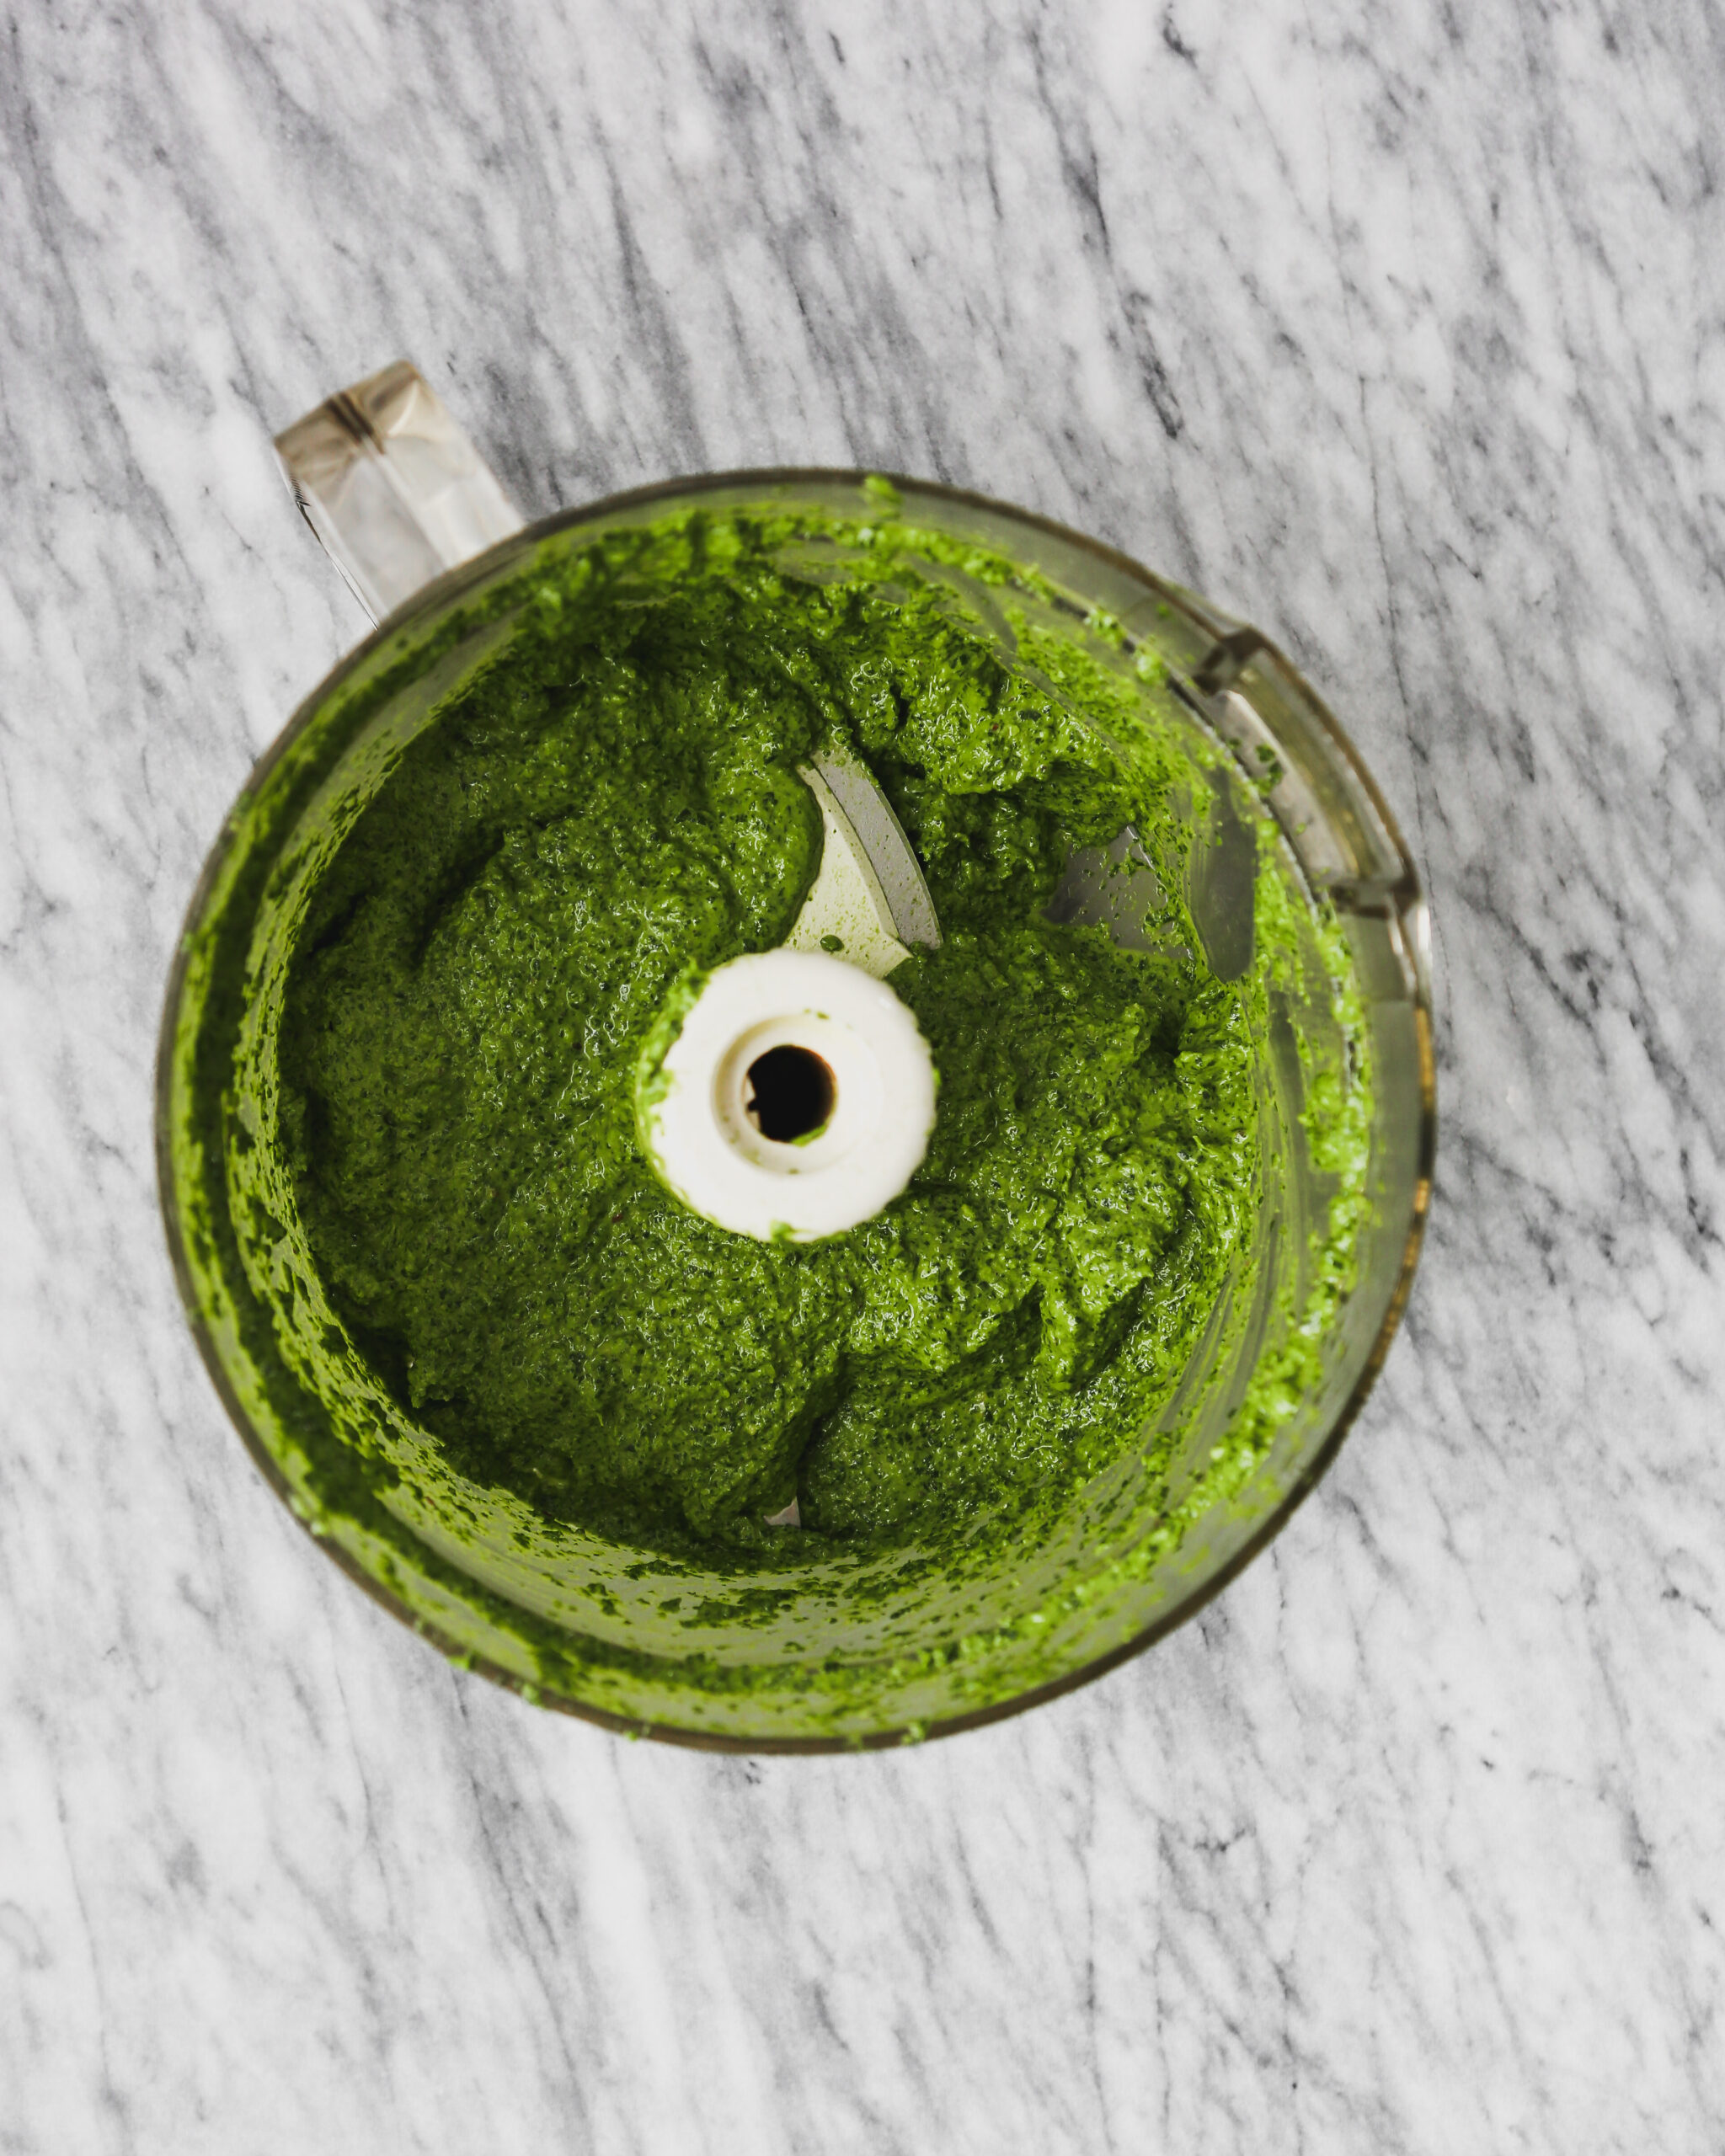 Pureed pesto in food processor on marble